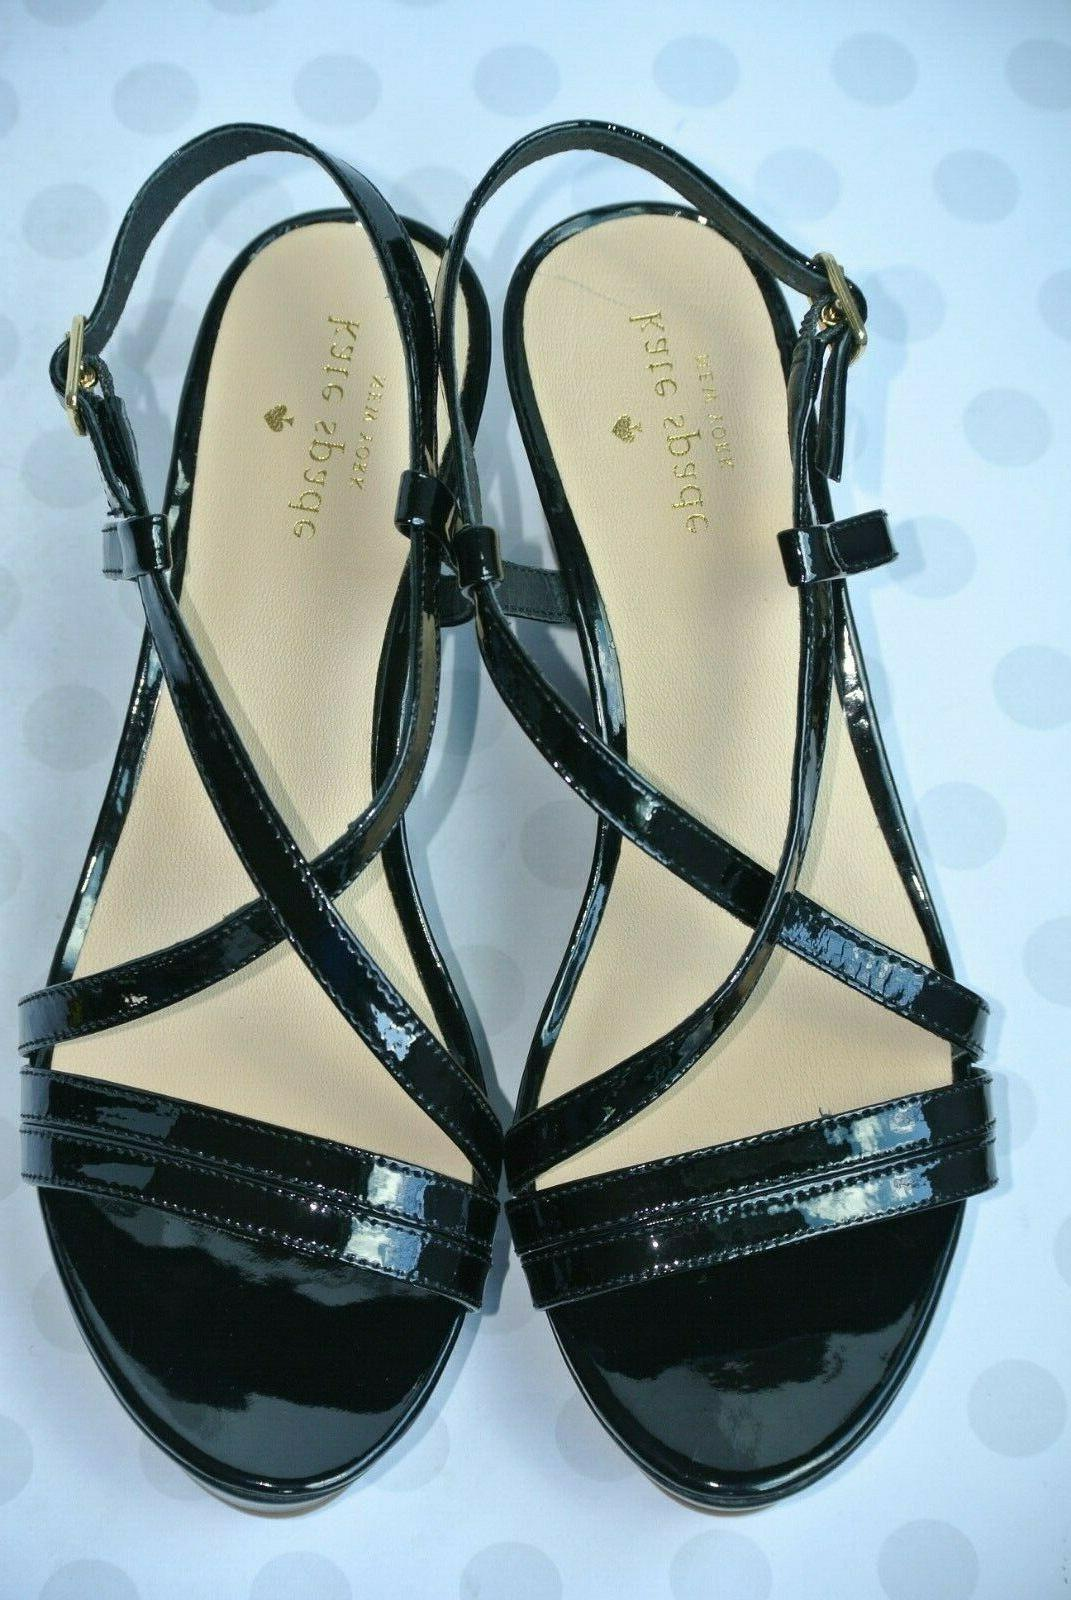 NEW York Womens Black Leather Platform Sandals